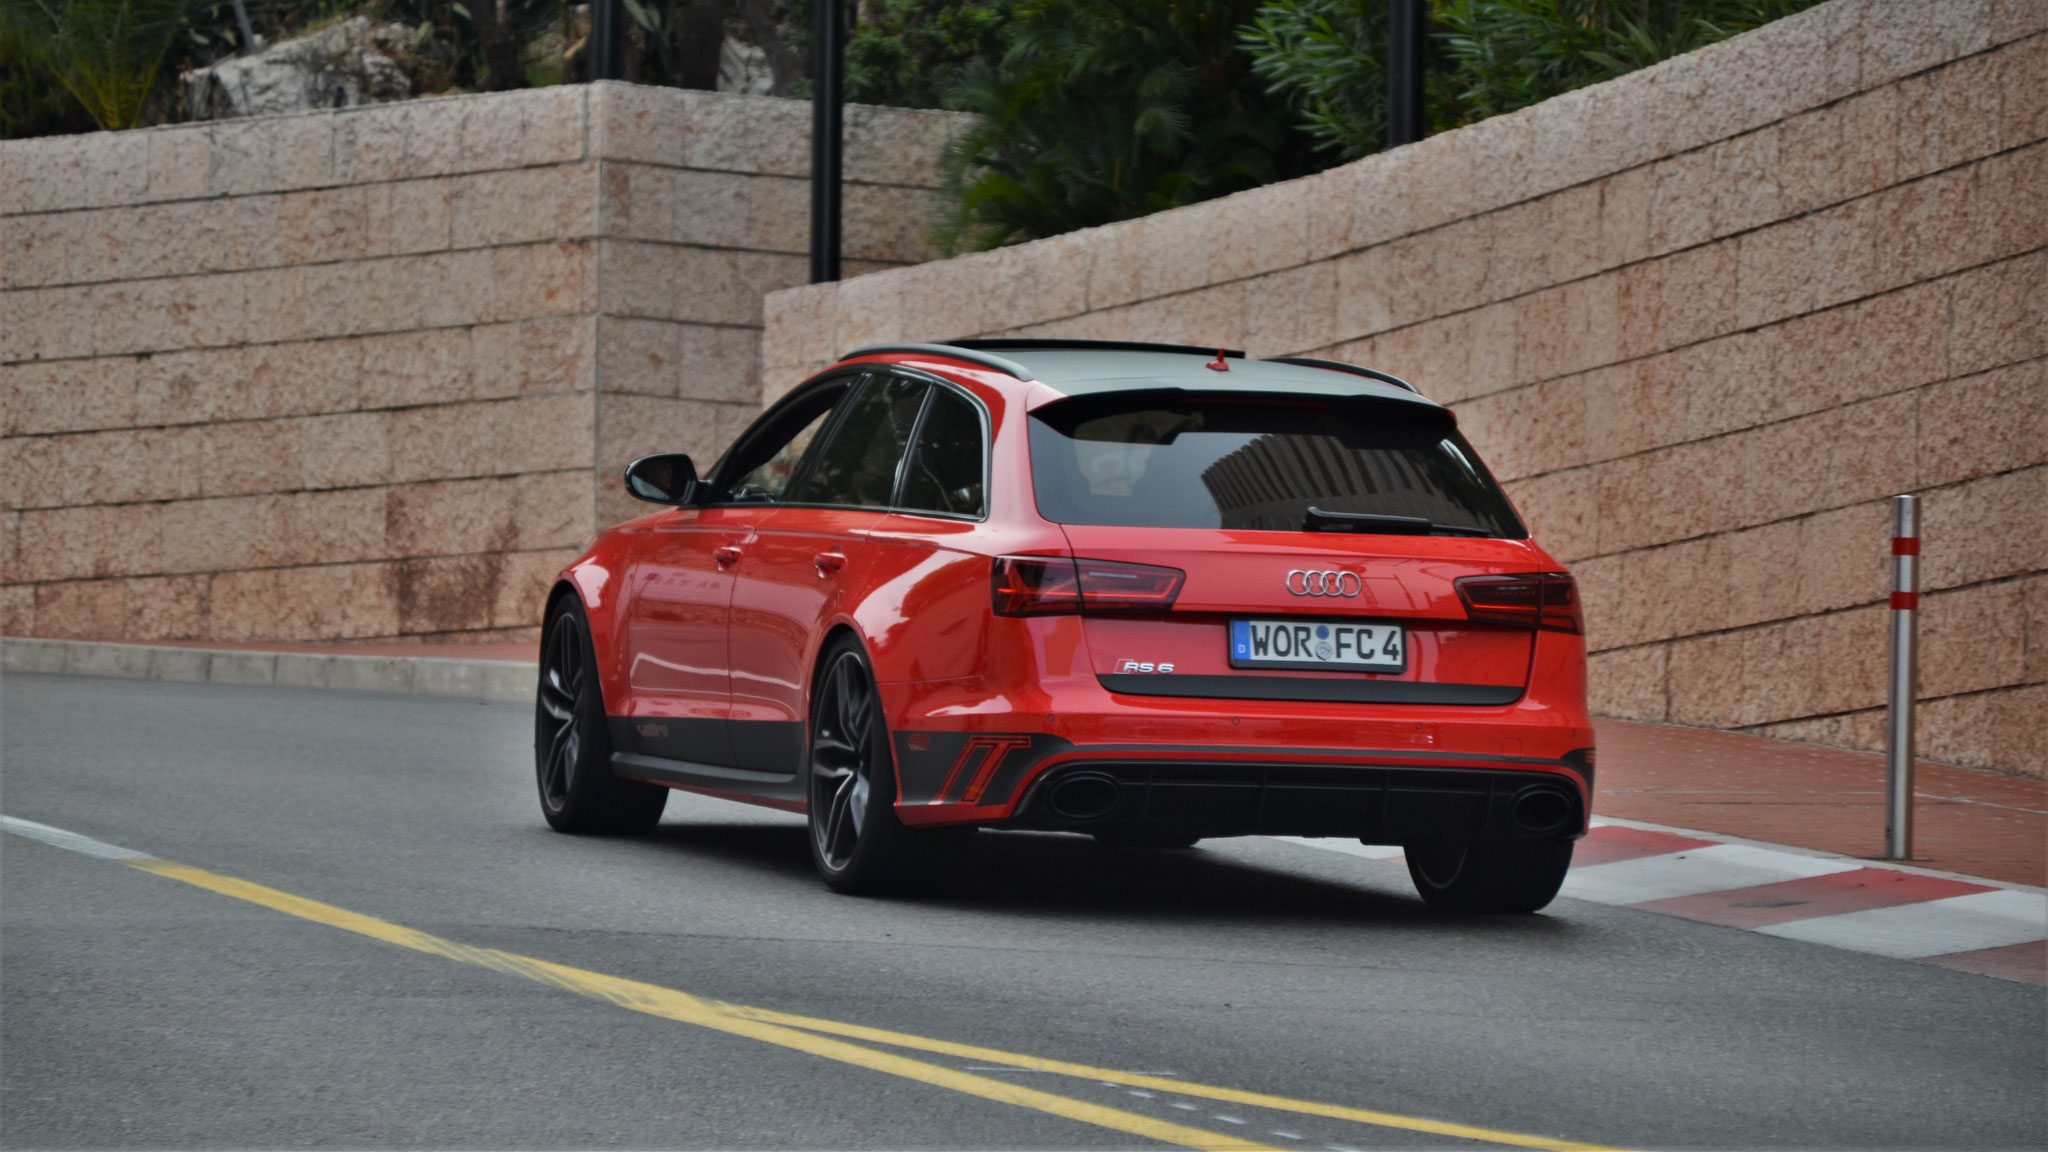 Audi RS6 - WOR-FC-4